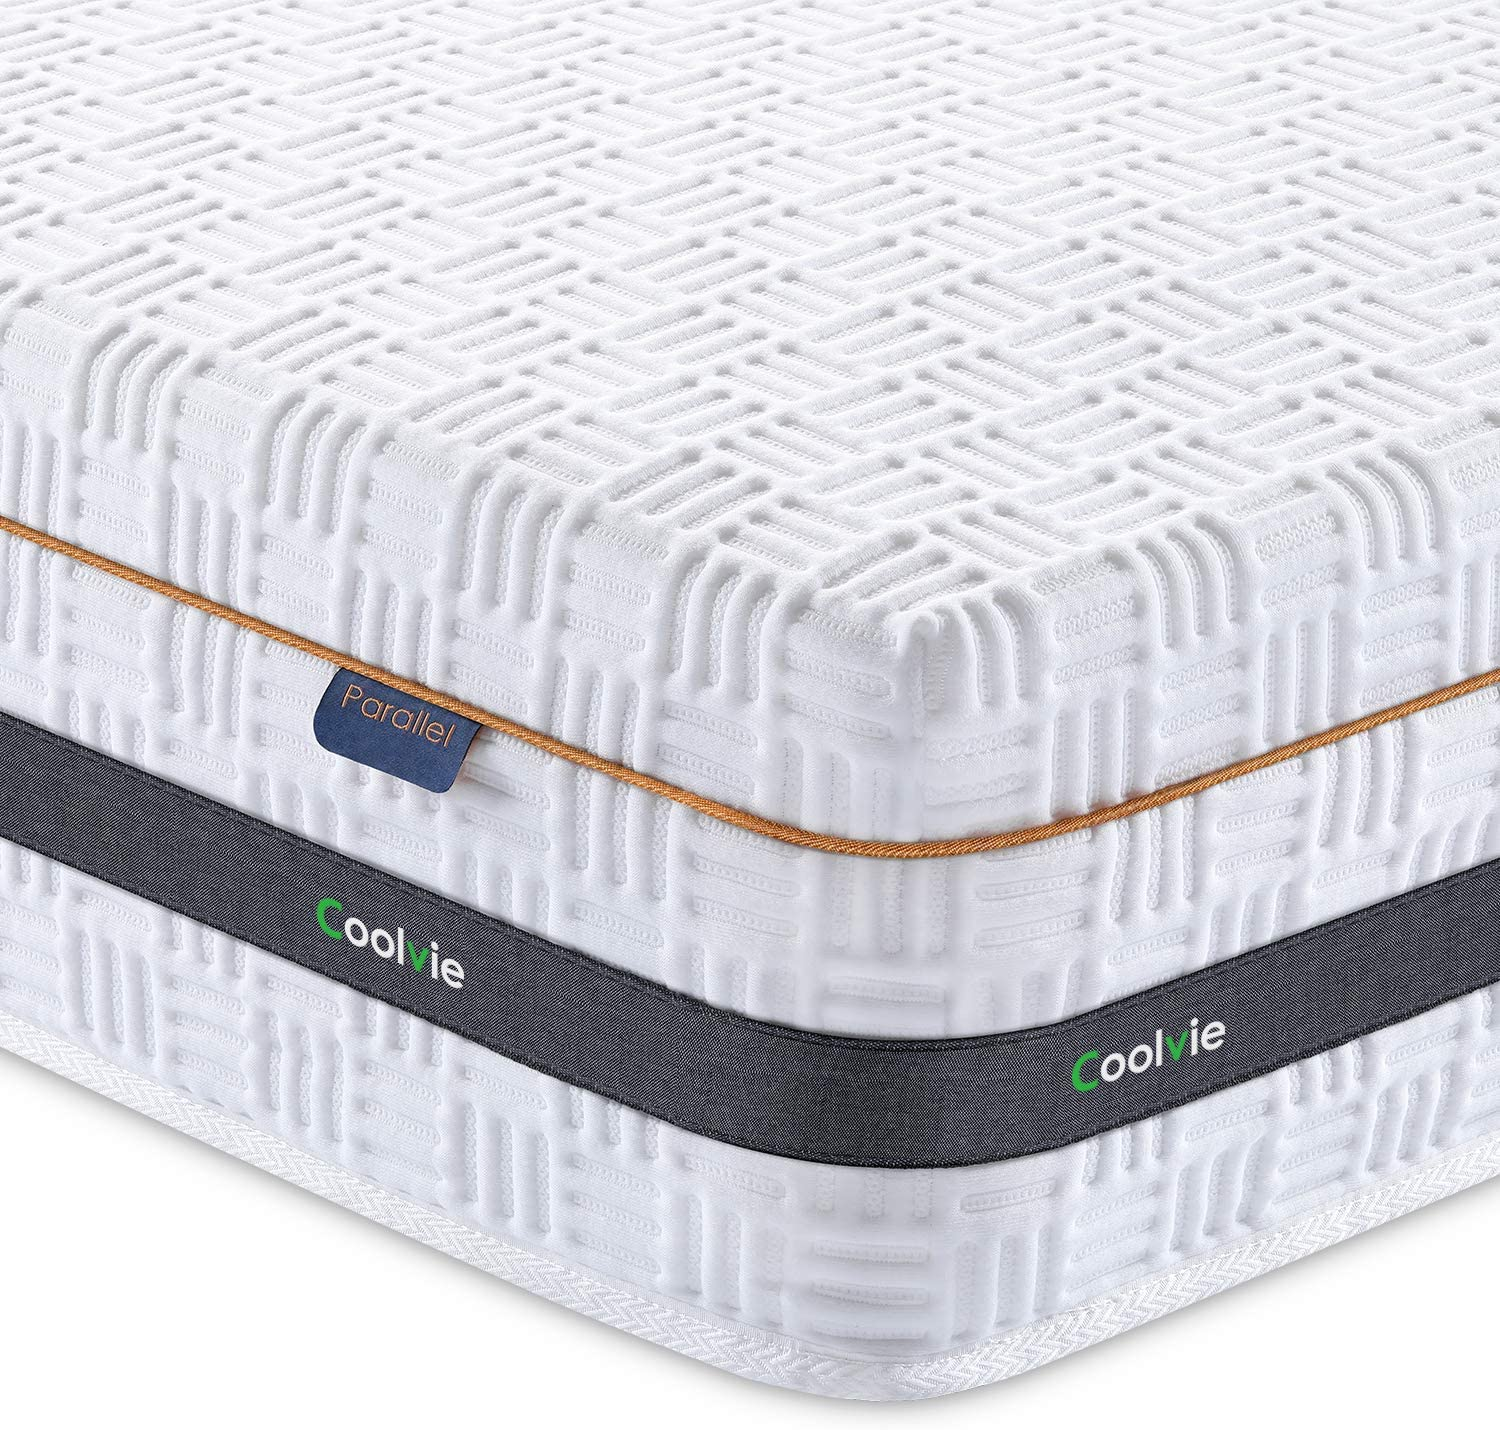 Coolvie 10 Inch Hybrid Memory Foam and Innerspring Single Mattress in a Box - inofia